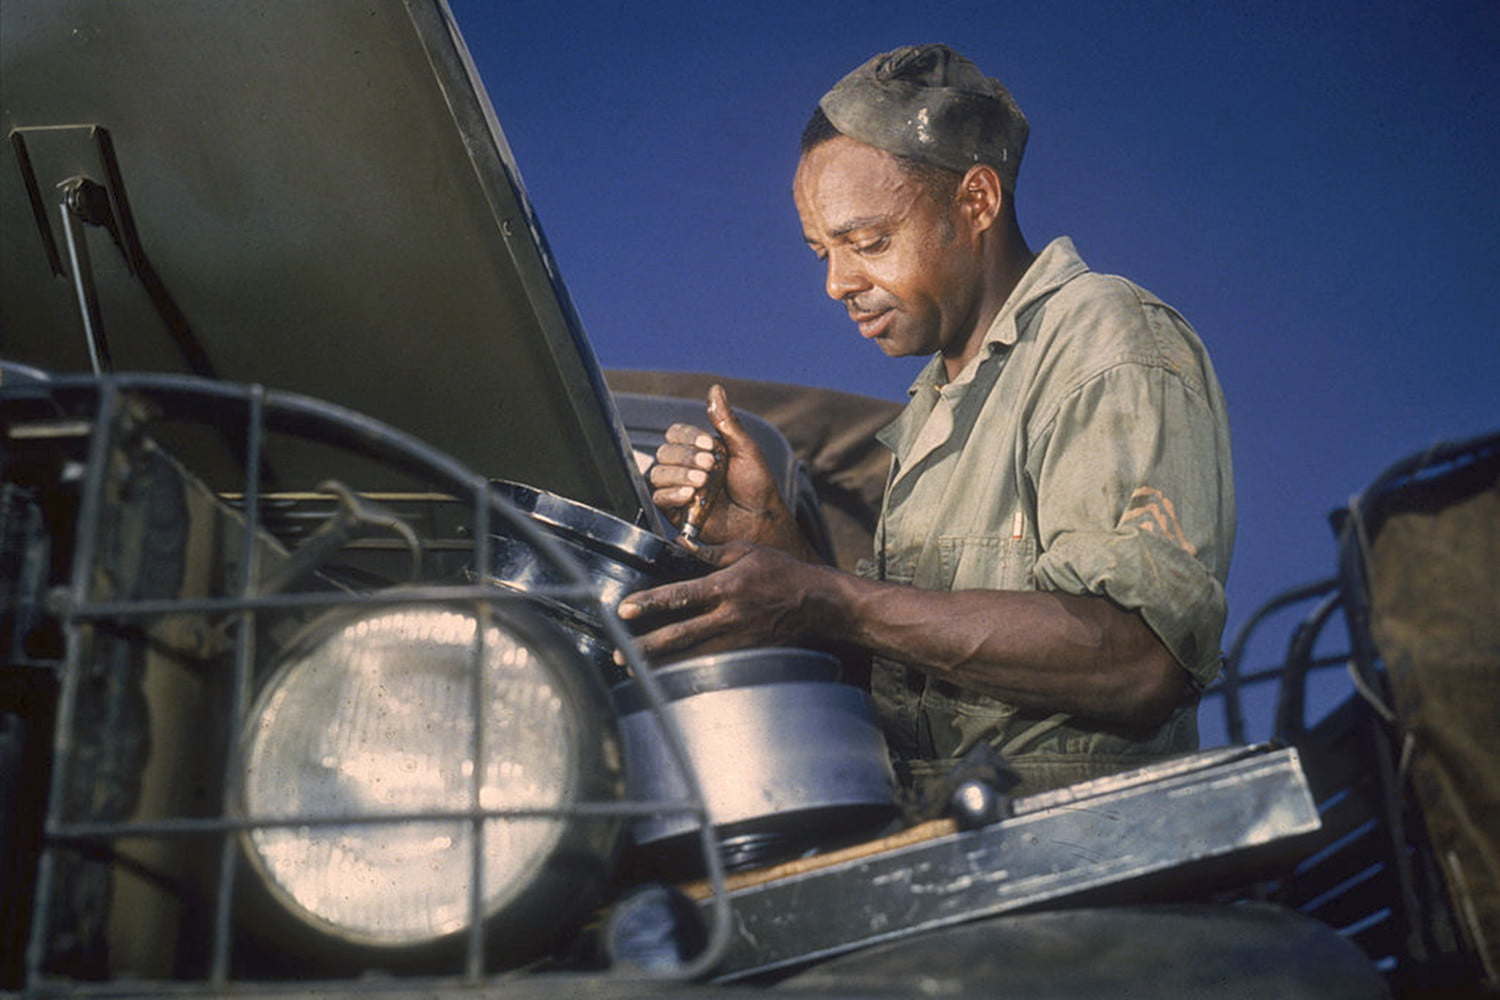 1950s engine tech was as efficient as today's. So why didn't we use it?